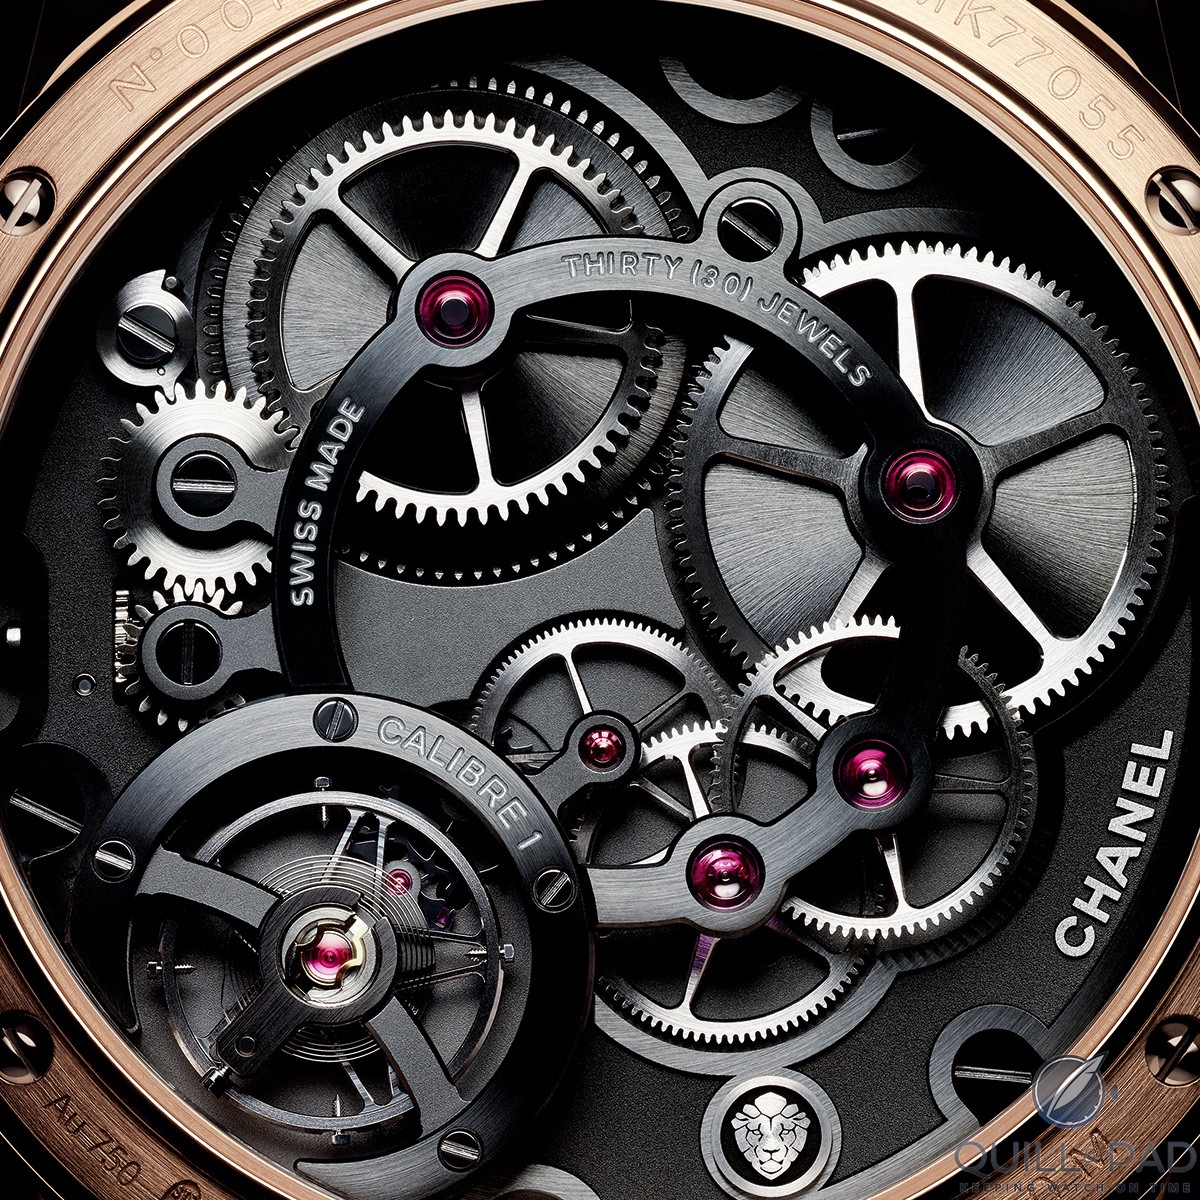 The very distinctive look of the beautifully finished movement of the Monsieur de Chanel